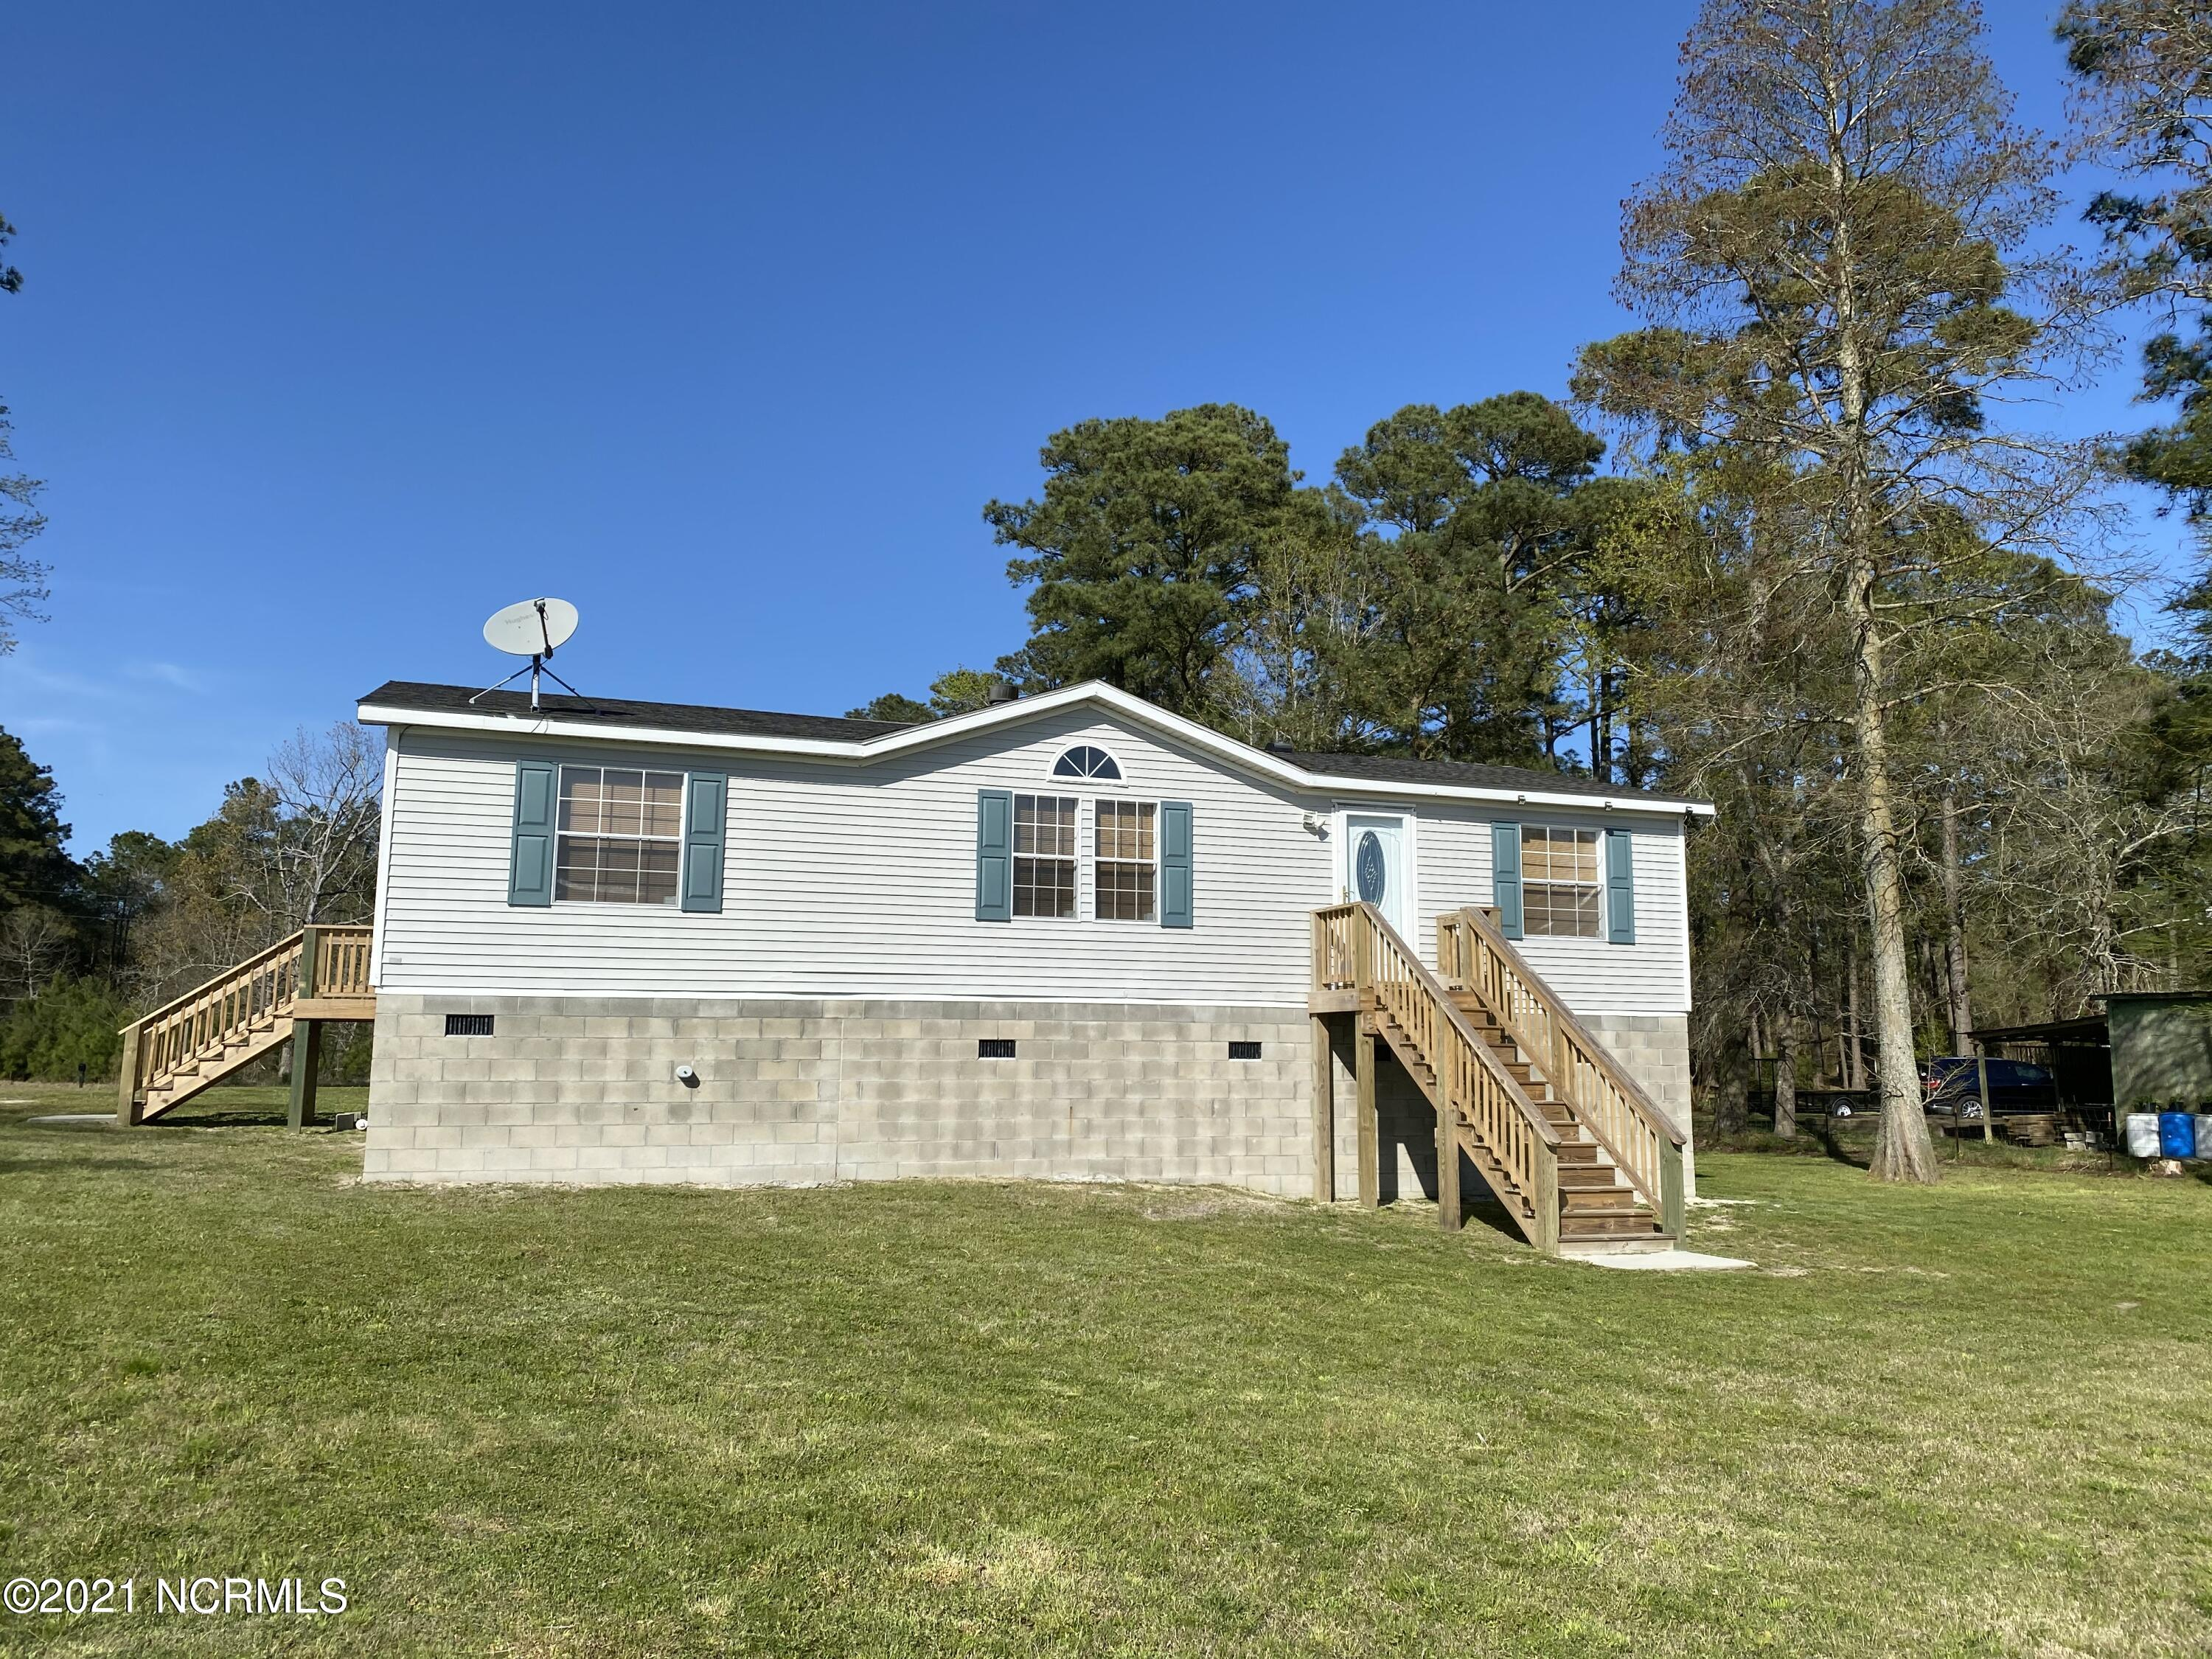 2623 Old Pamlico Beach Road, Belhaven, North Carolina 27810, 3 Bedrooms Bedrooms, 6 Rooms Rooms,2 BathroomsBathrooms,Manufactured home,For sale,Old Pamlico Beach,100244336